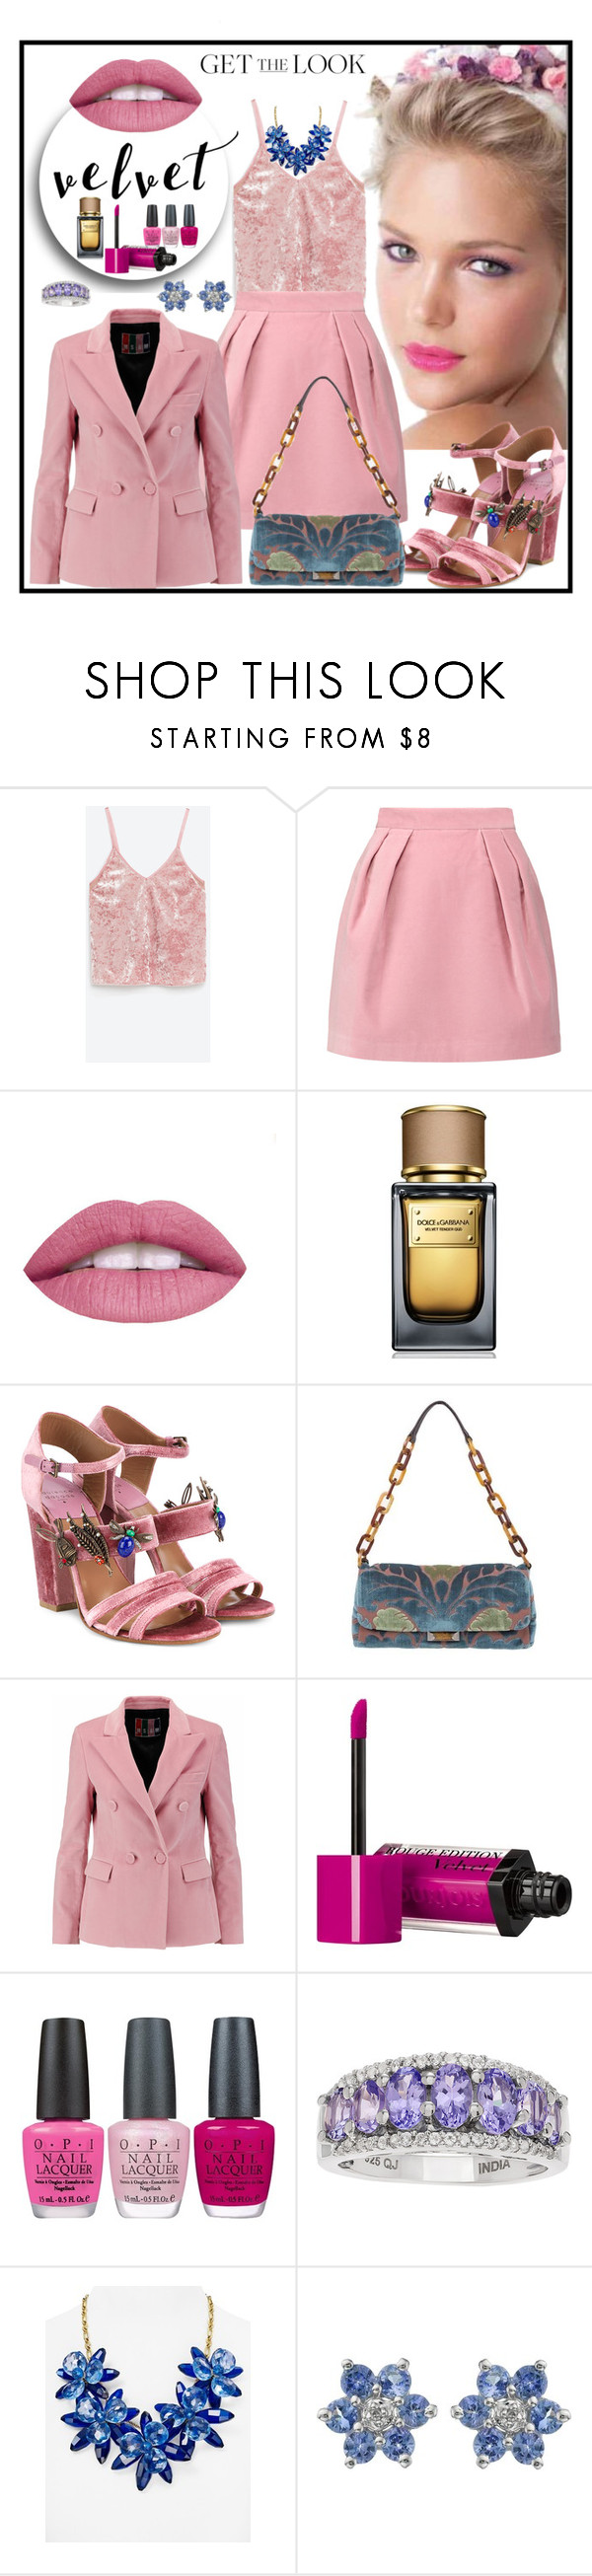 """""""VELVET"""" by fantasiegirl ❤ liked on Polyvore featuring MSGM, Dolce&Gabbana, Laurence Dacade, Miu Miu, Bourjois, OPI and Kate Spade"""